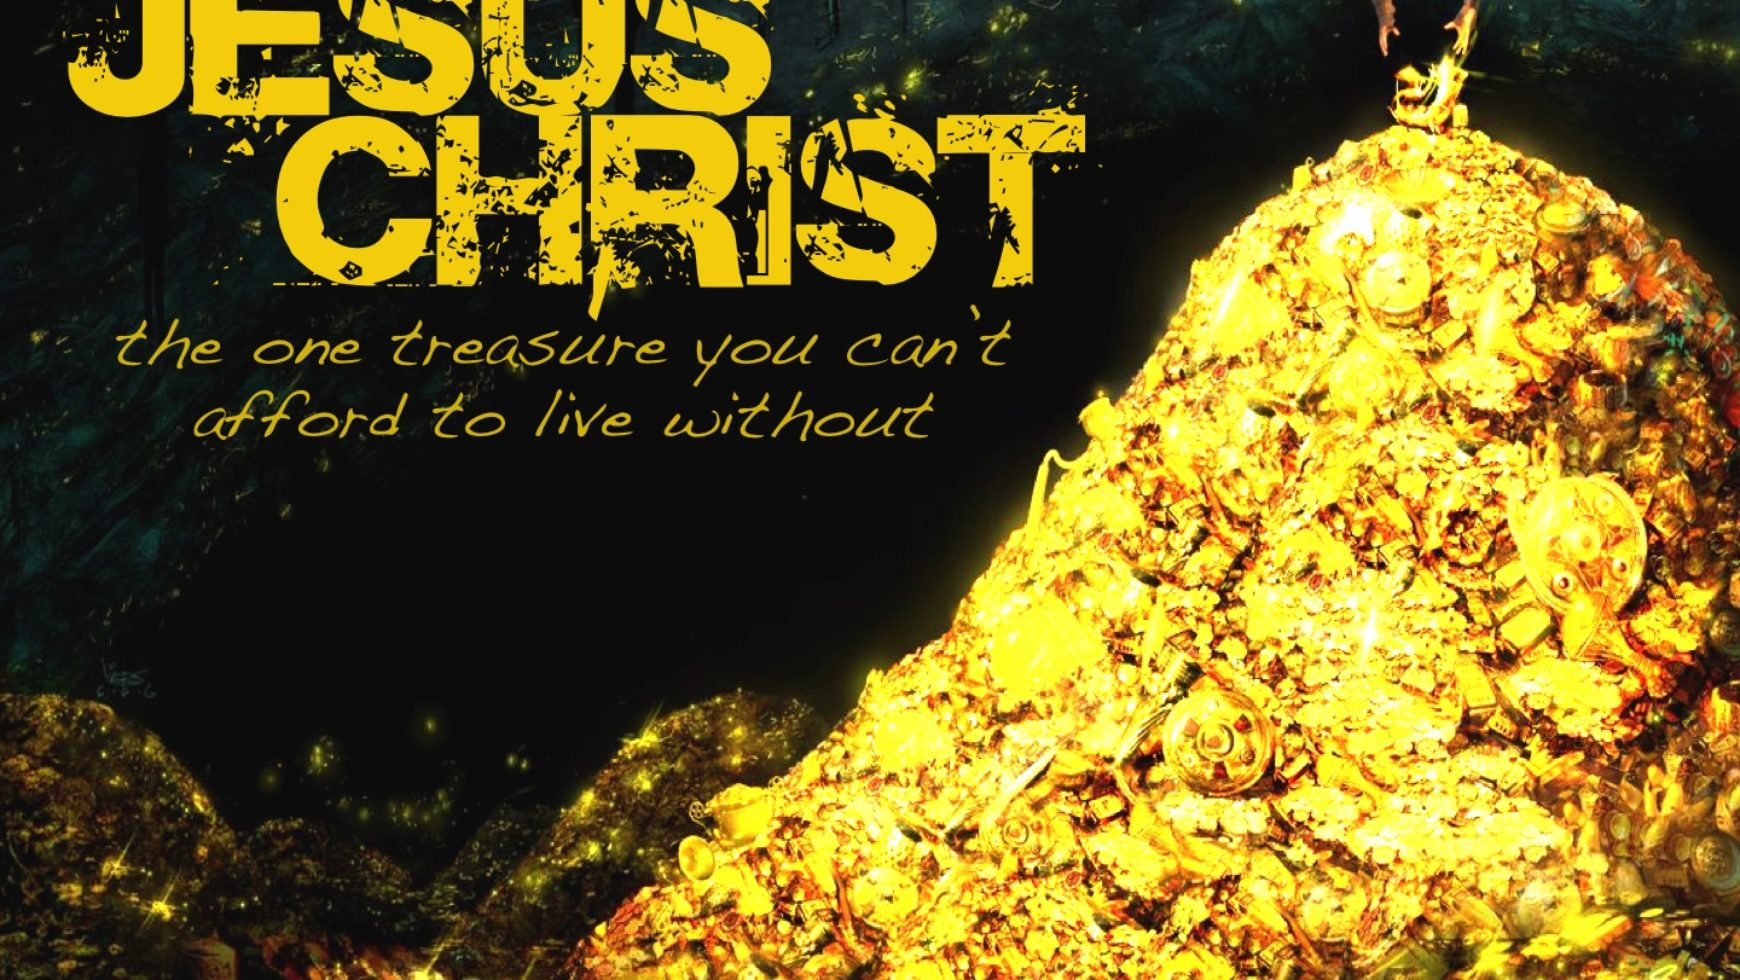 Christ is our treasure